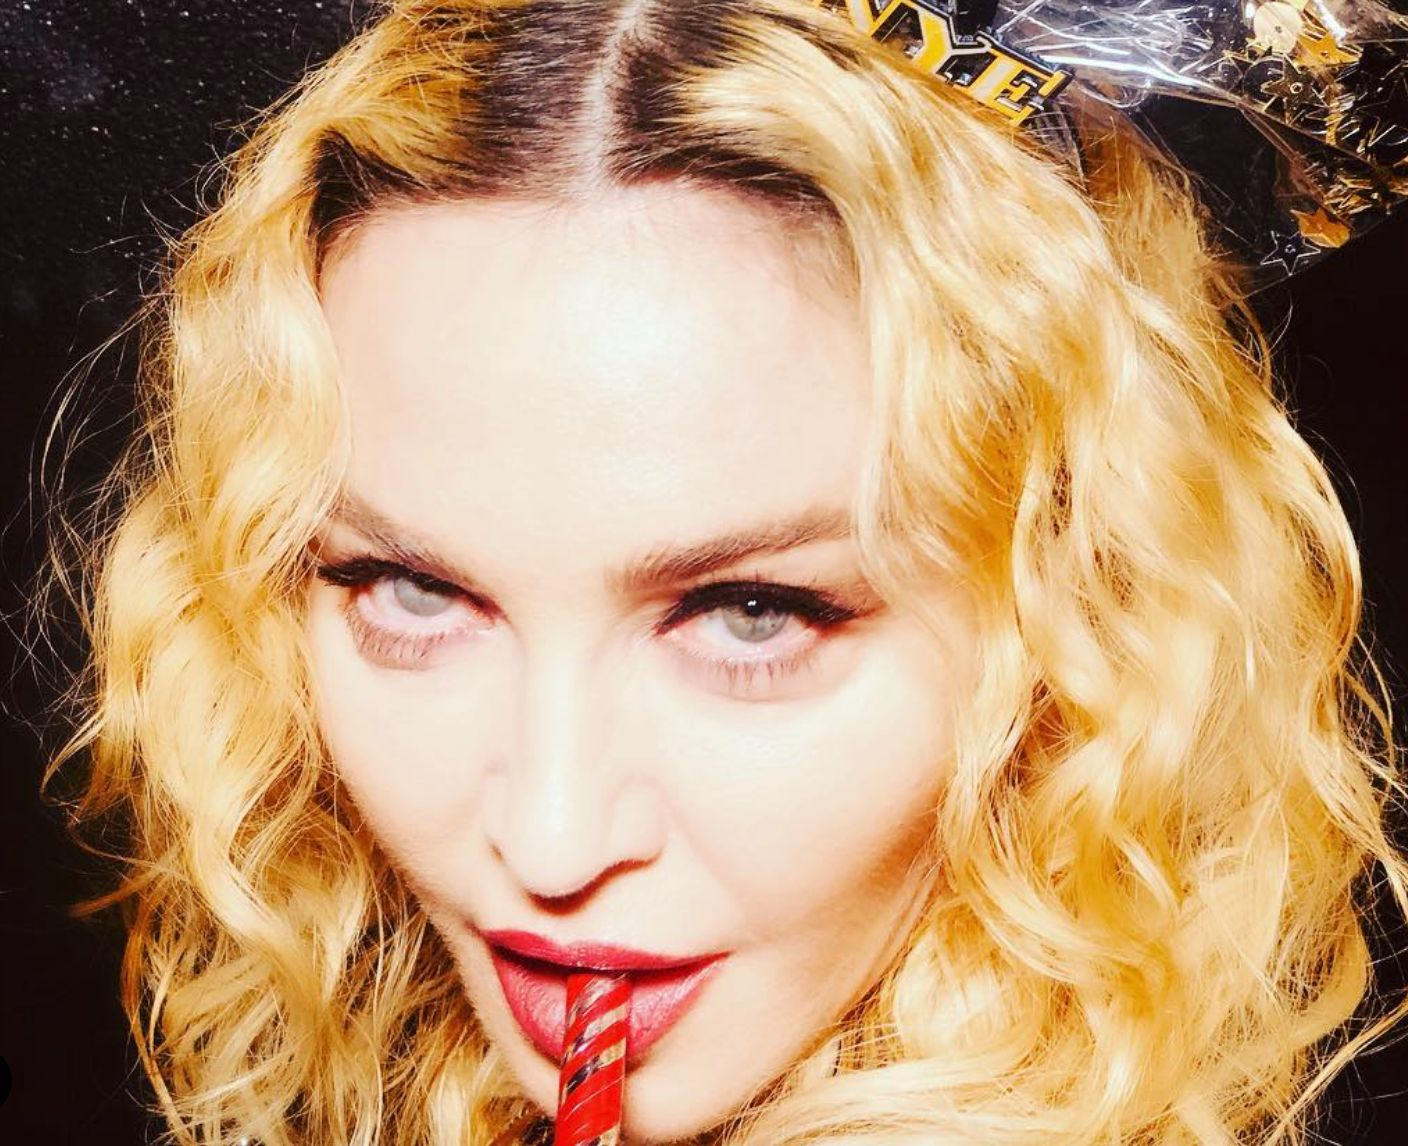 Madonna Brushes Off Plastic Surgery Speculation In New Instagram